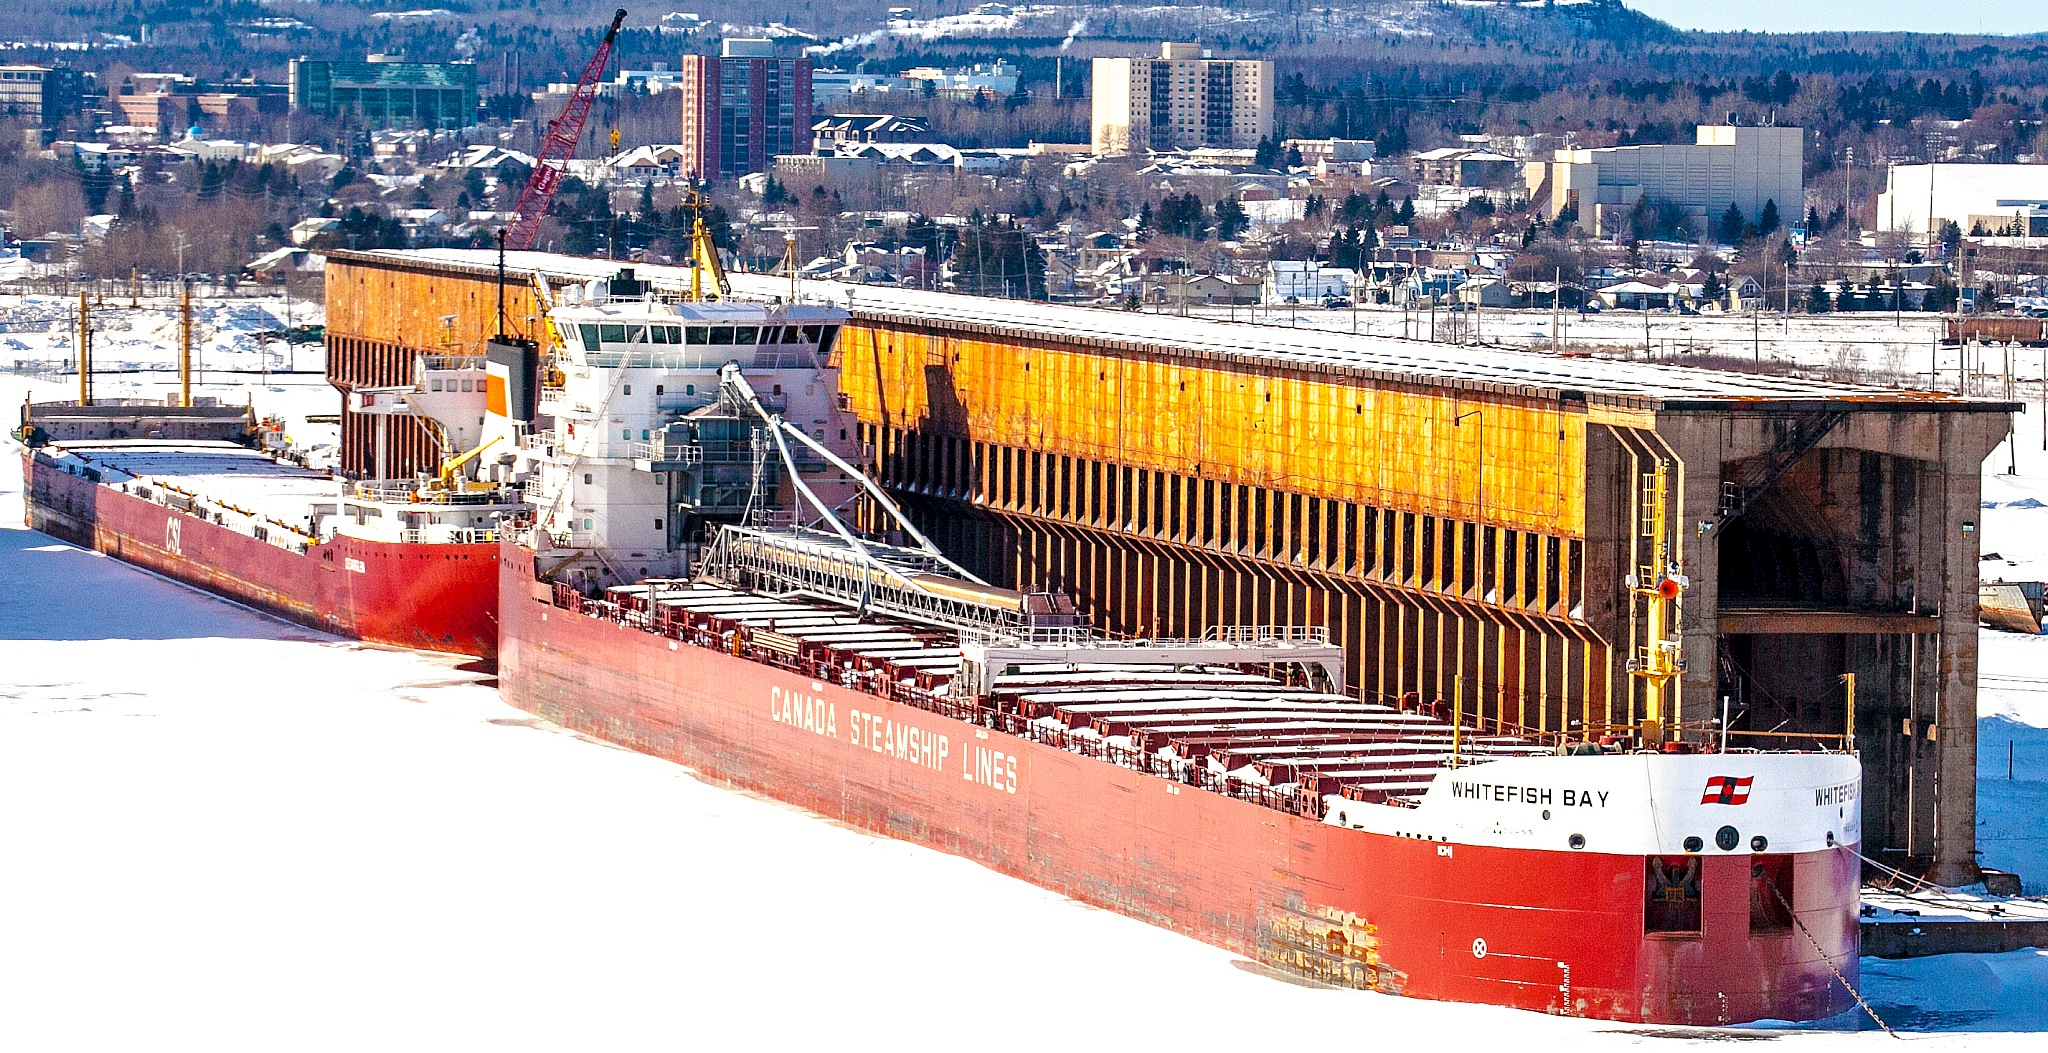 Famous Shot in Northwestern Ontario - The WHITEFISH BAY parked for the Winter at the Ore Docks by Kevin Palmer RPM